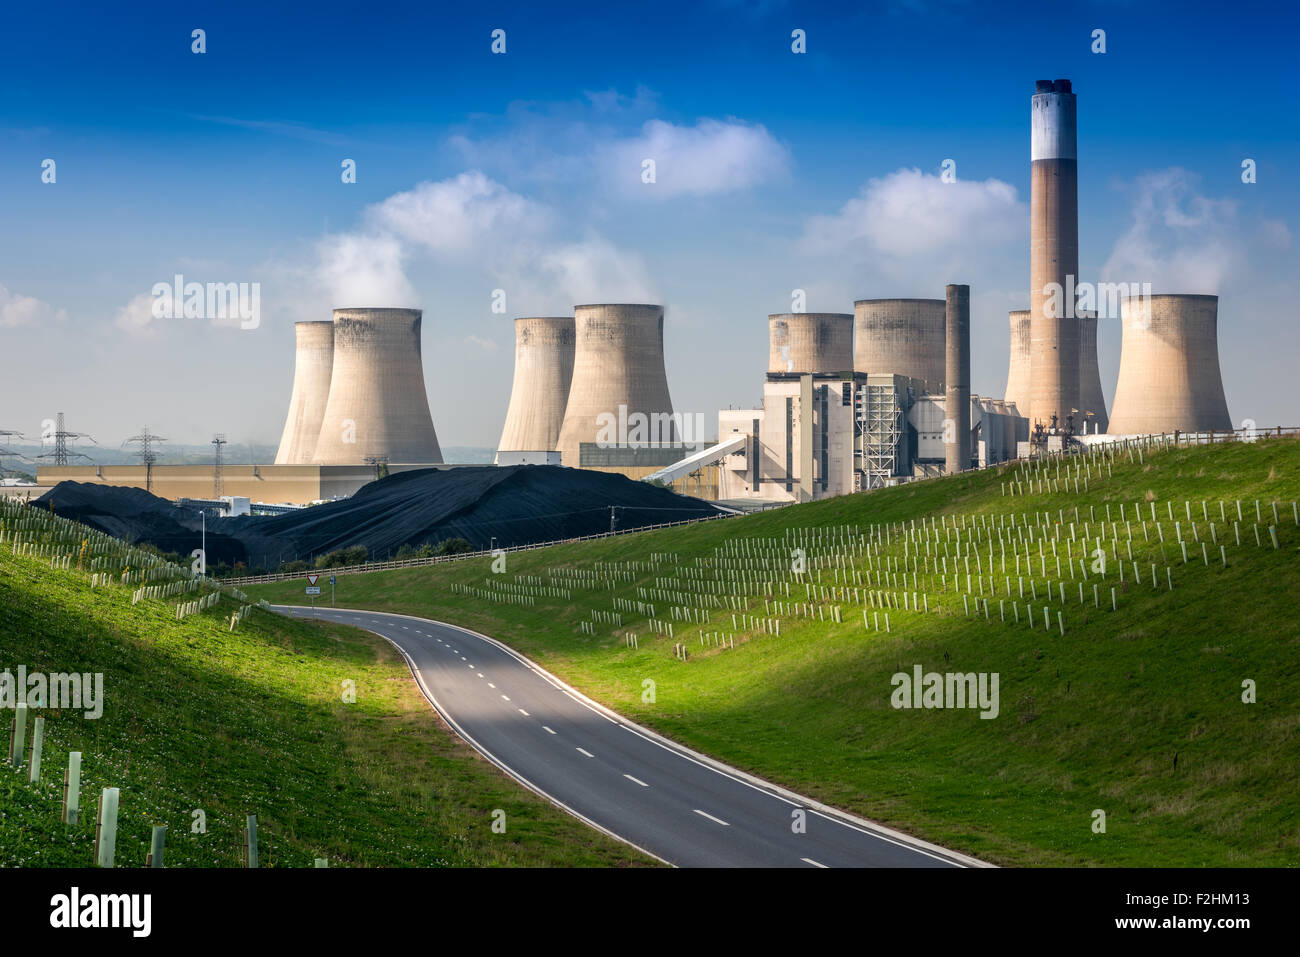 Ratcliffe-su-Soar Power Station Immagini Stock